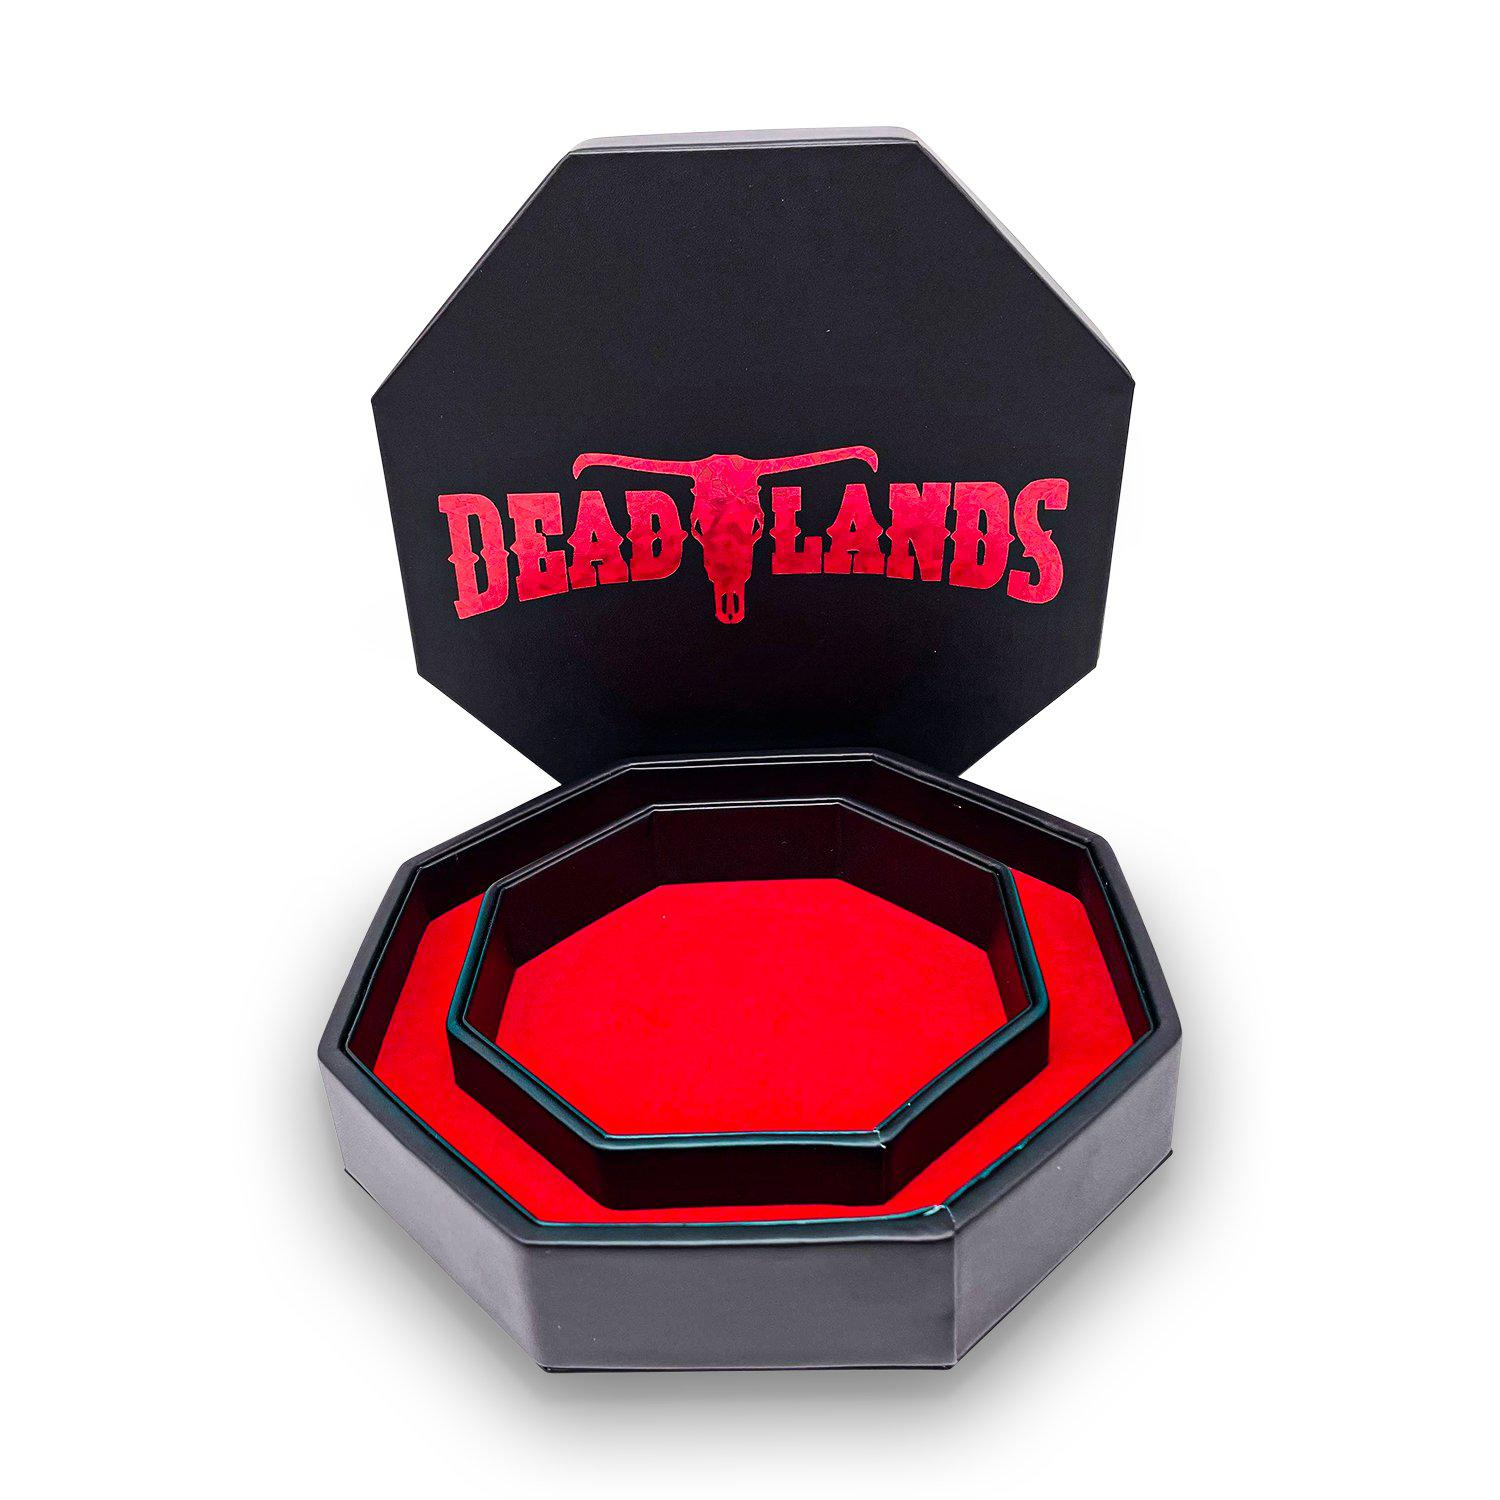 Red Deadlands Tray of Holding™ Dice Tray by Norse Foundry